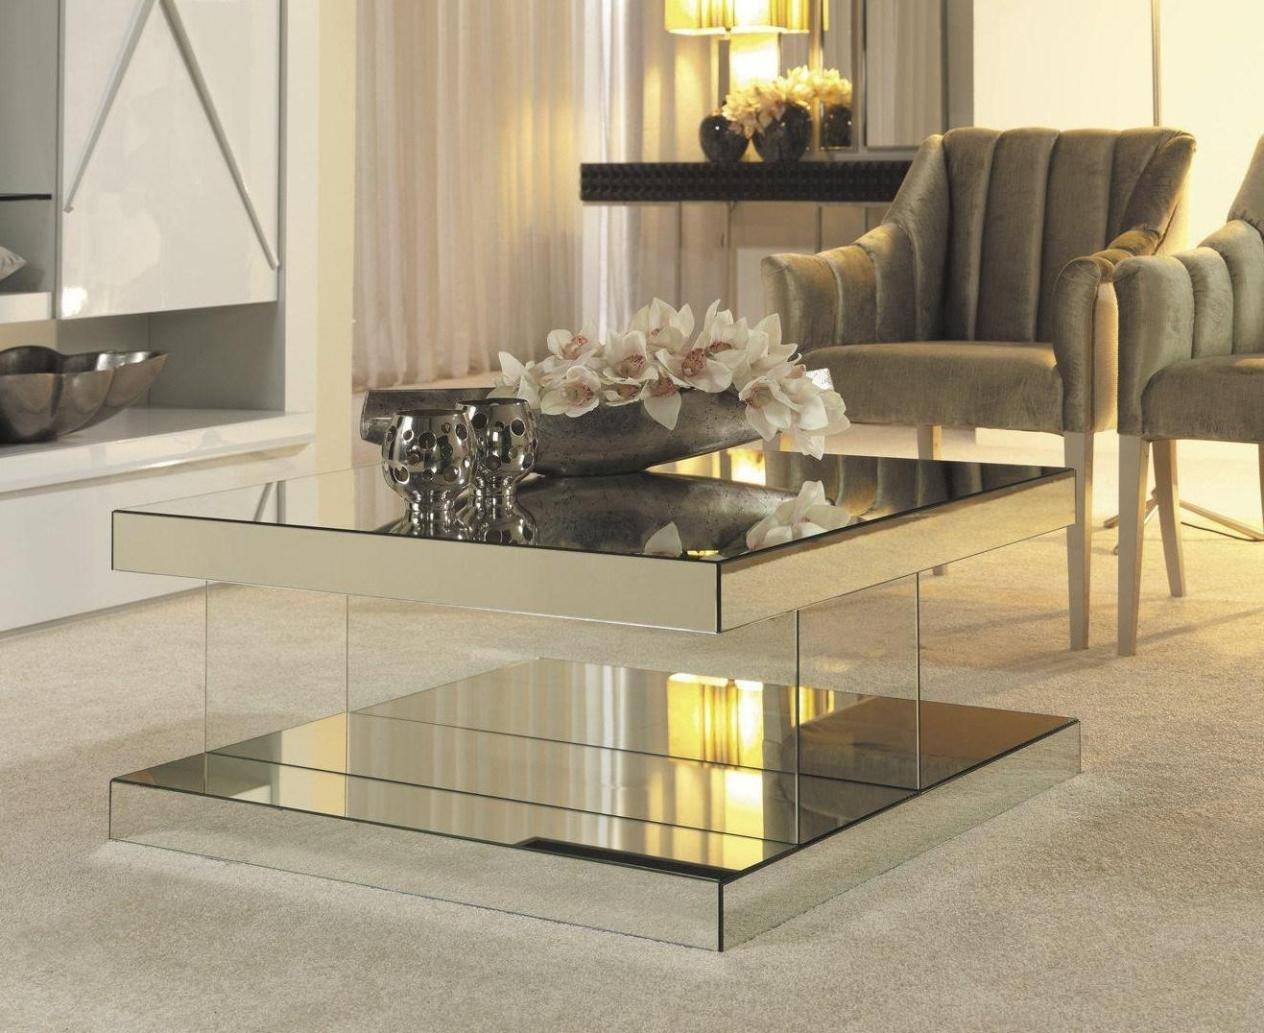 Coffee Tables: Surprising Mirrored Coffee Tables Designs Mirrored for Big Square Coffee Tables (Image 19 of 30)